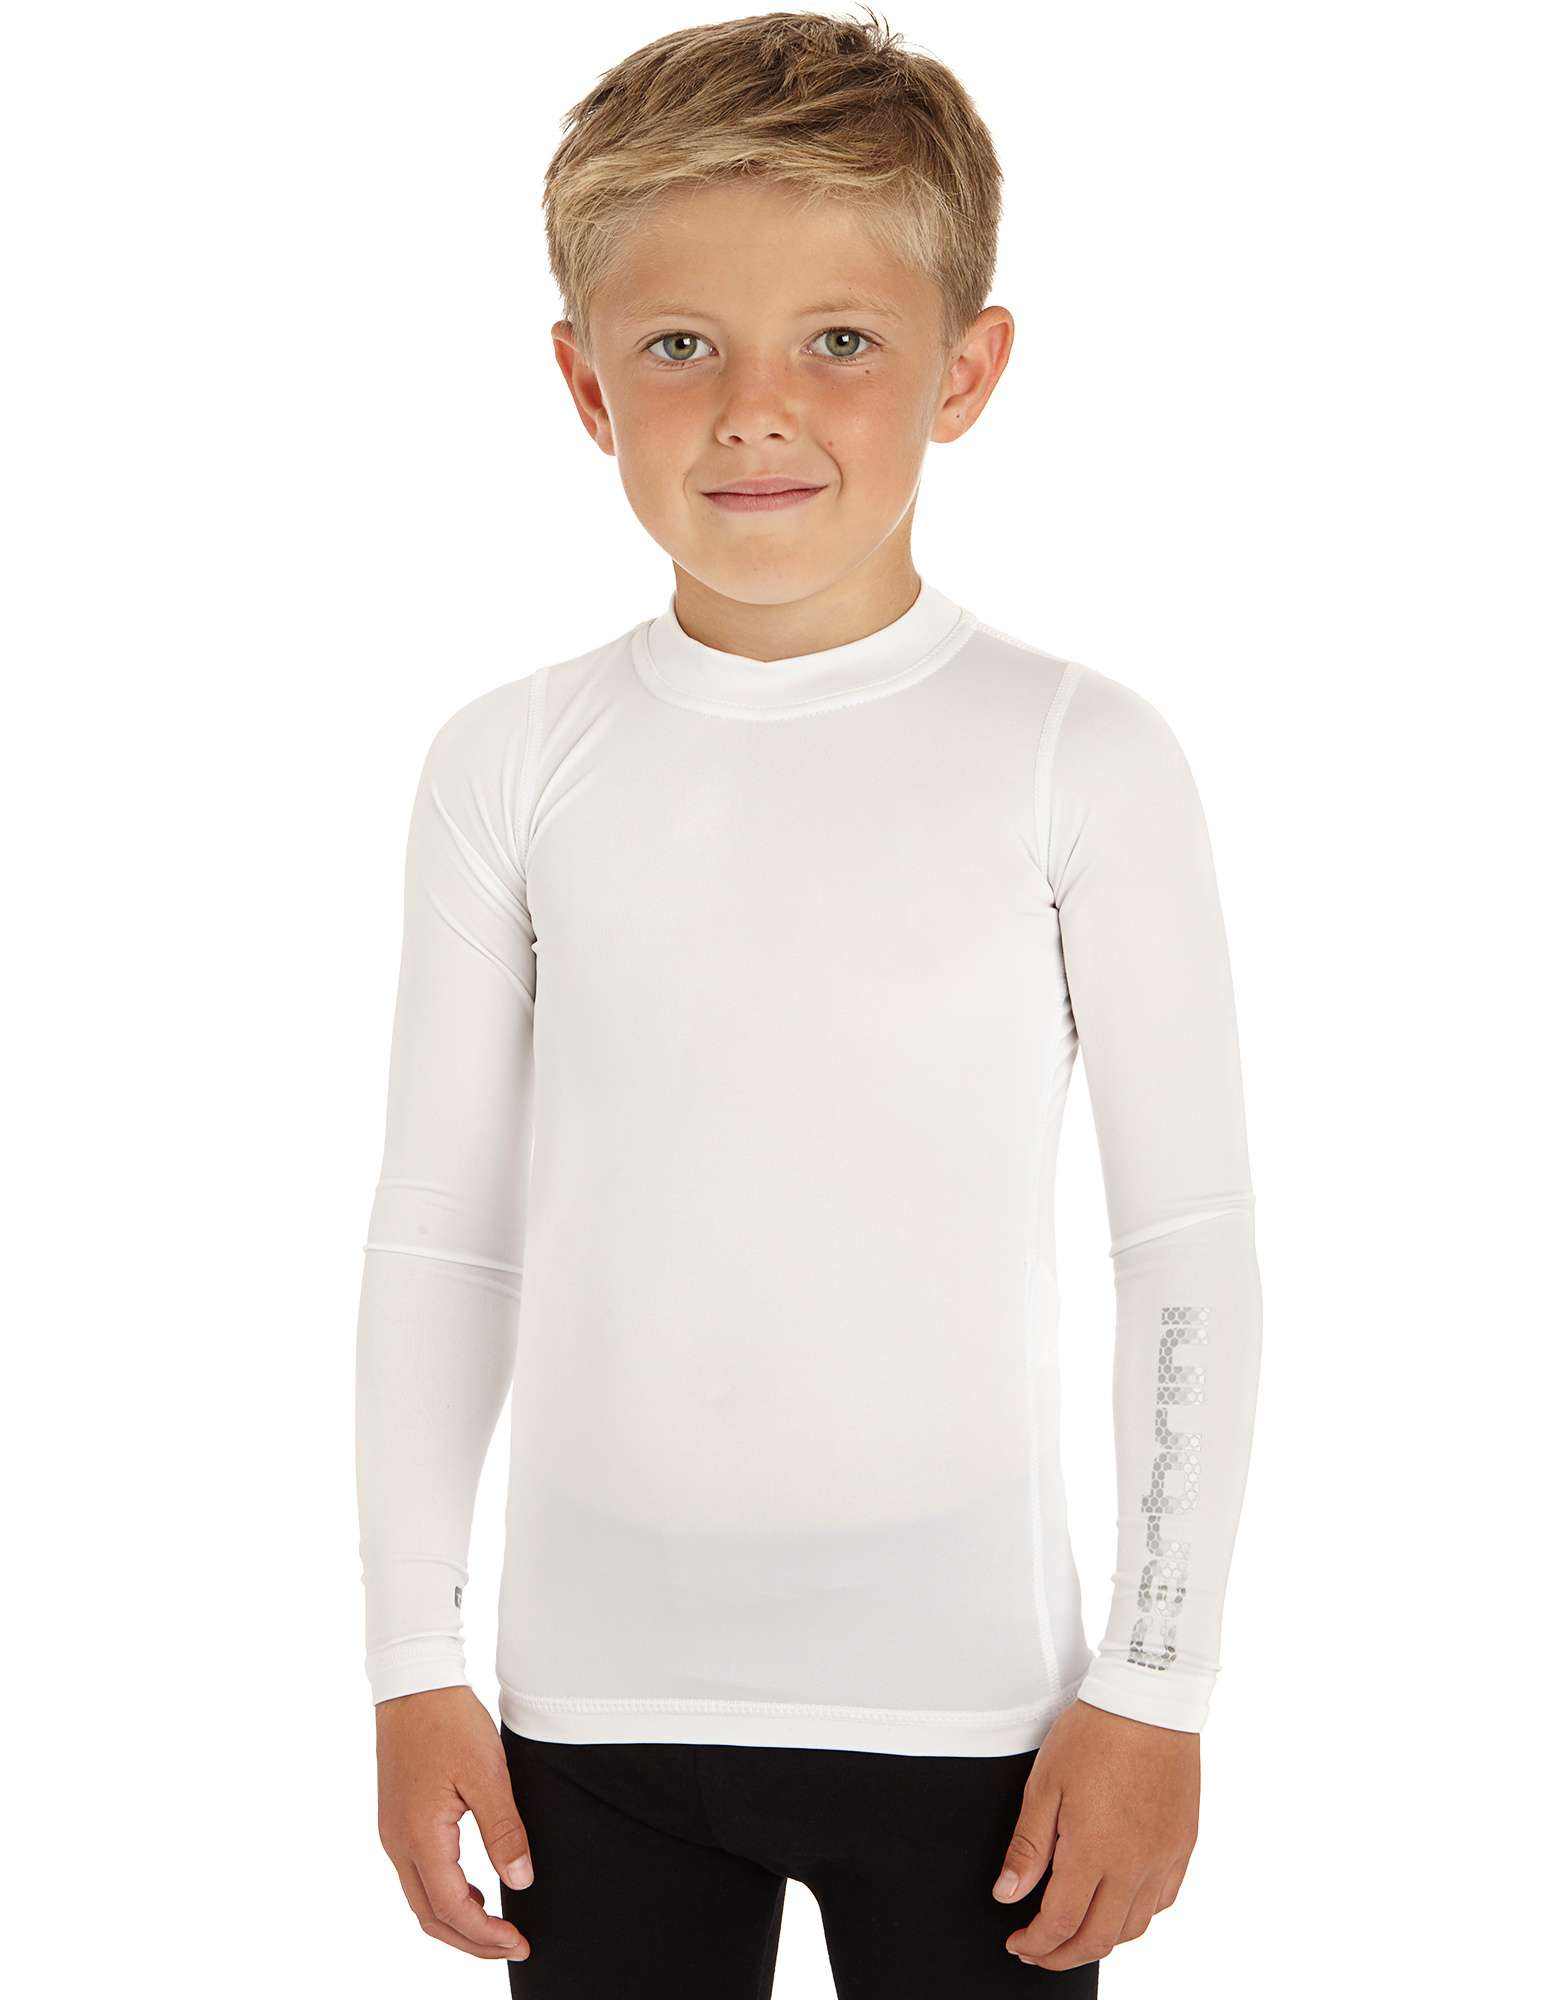 Carbrini Maximus Long Sleeve Baselayer Junior